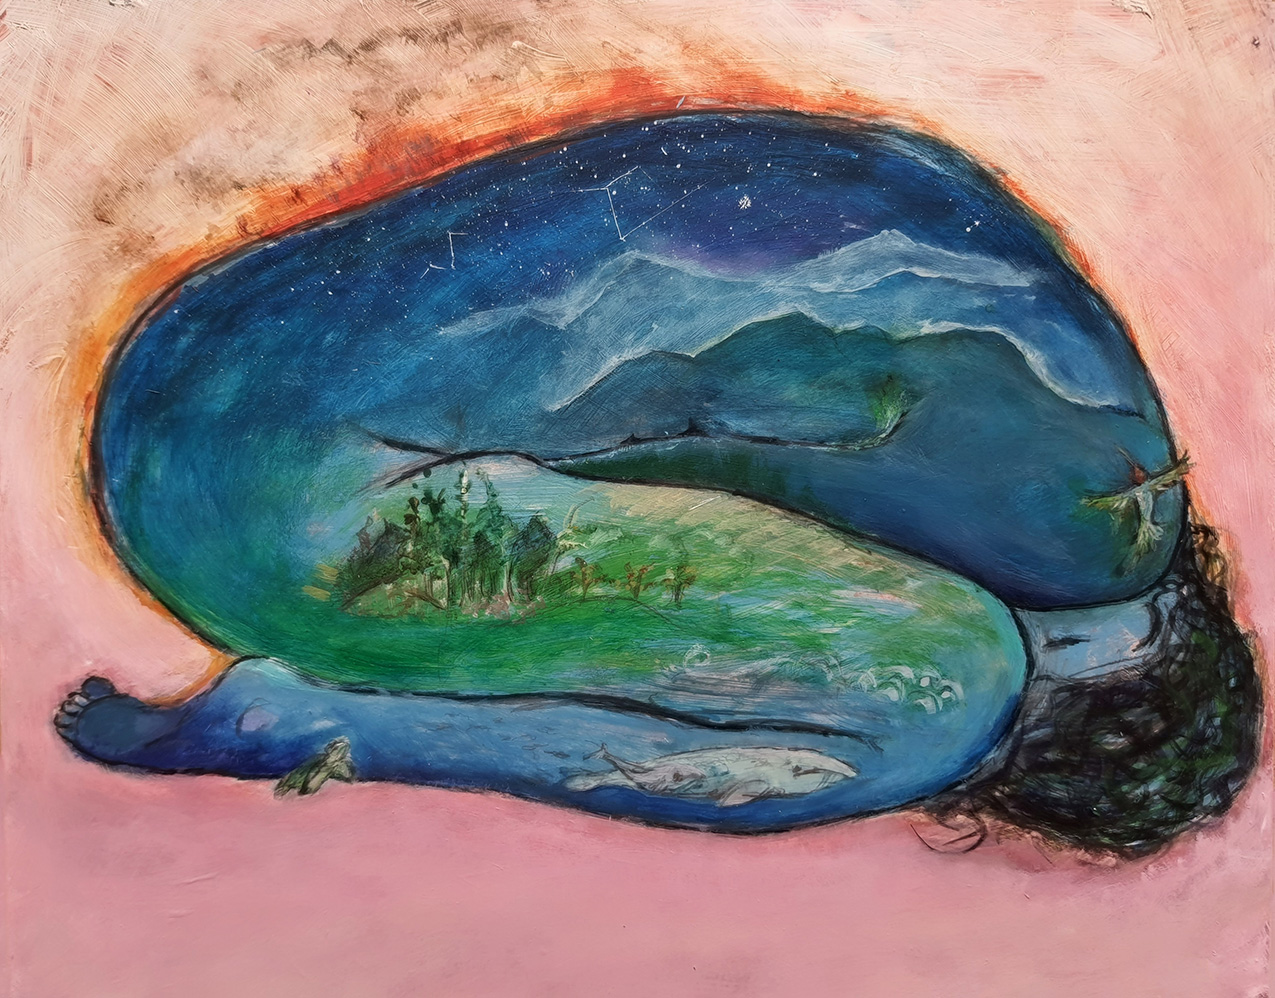 Painting of a female figure on a light pink background. The figure is curled up and the shape is filled with water, vegetation and animals to represent the Earth.